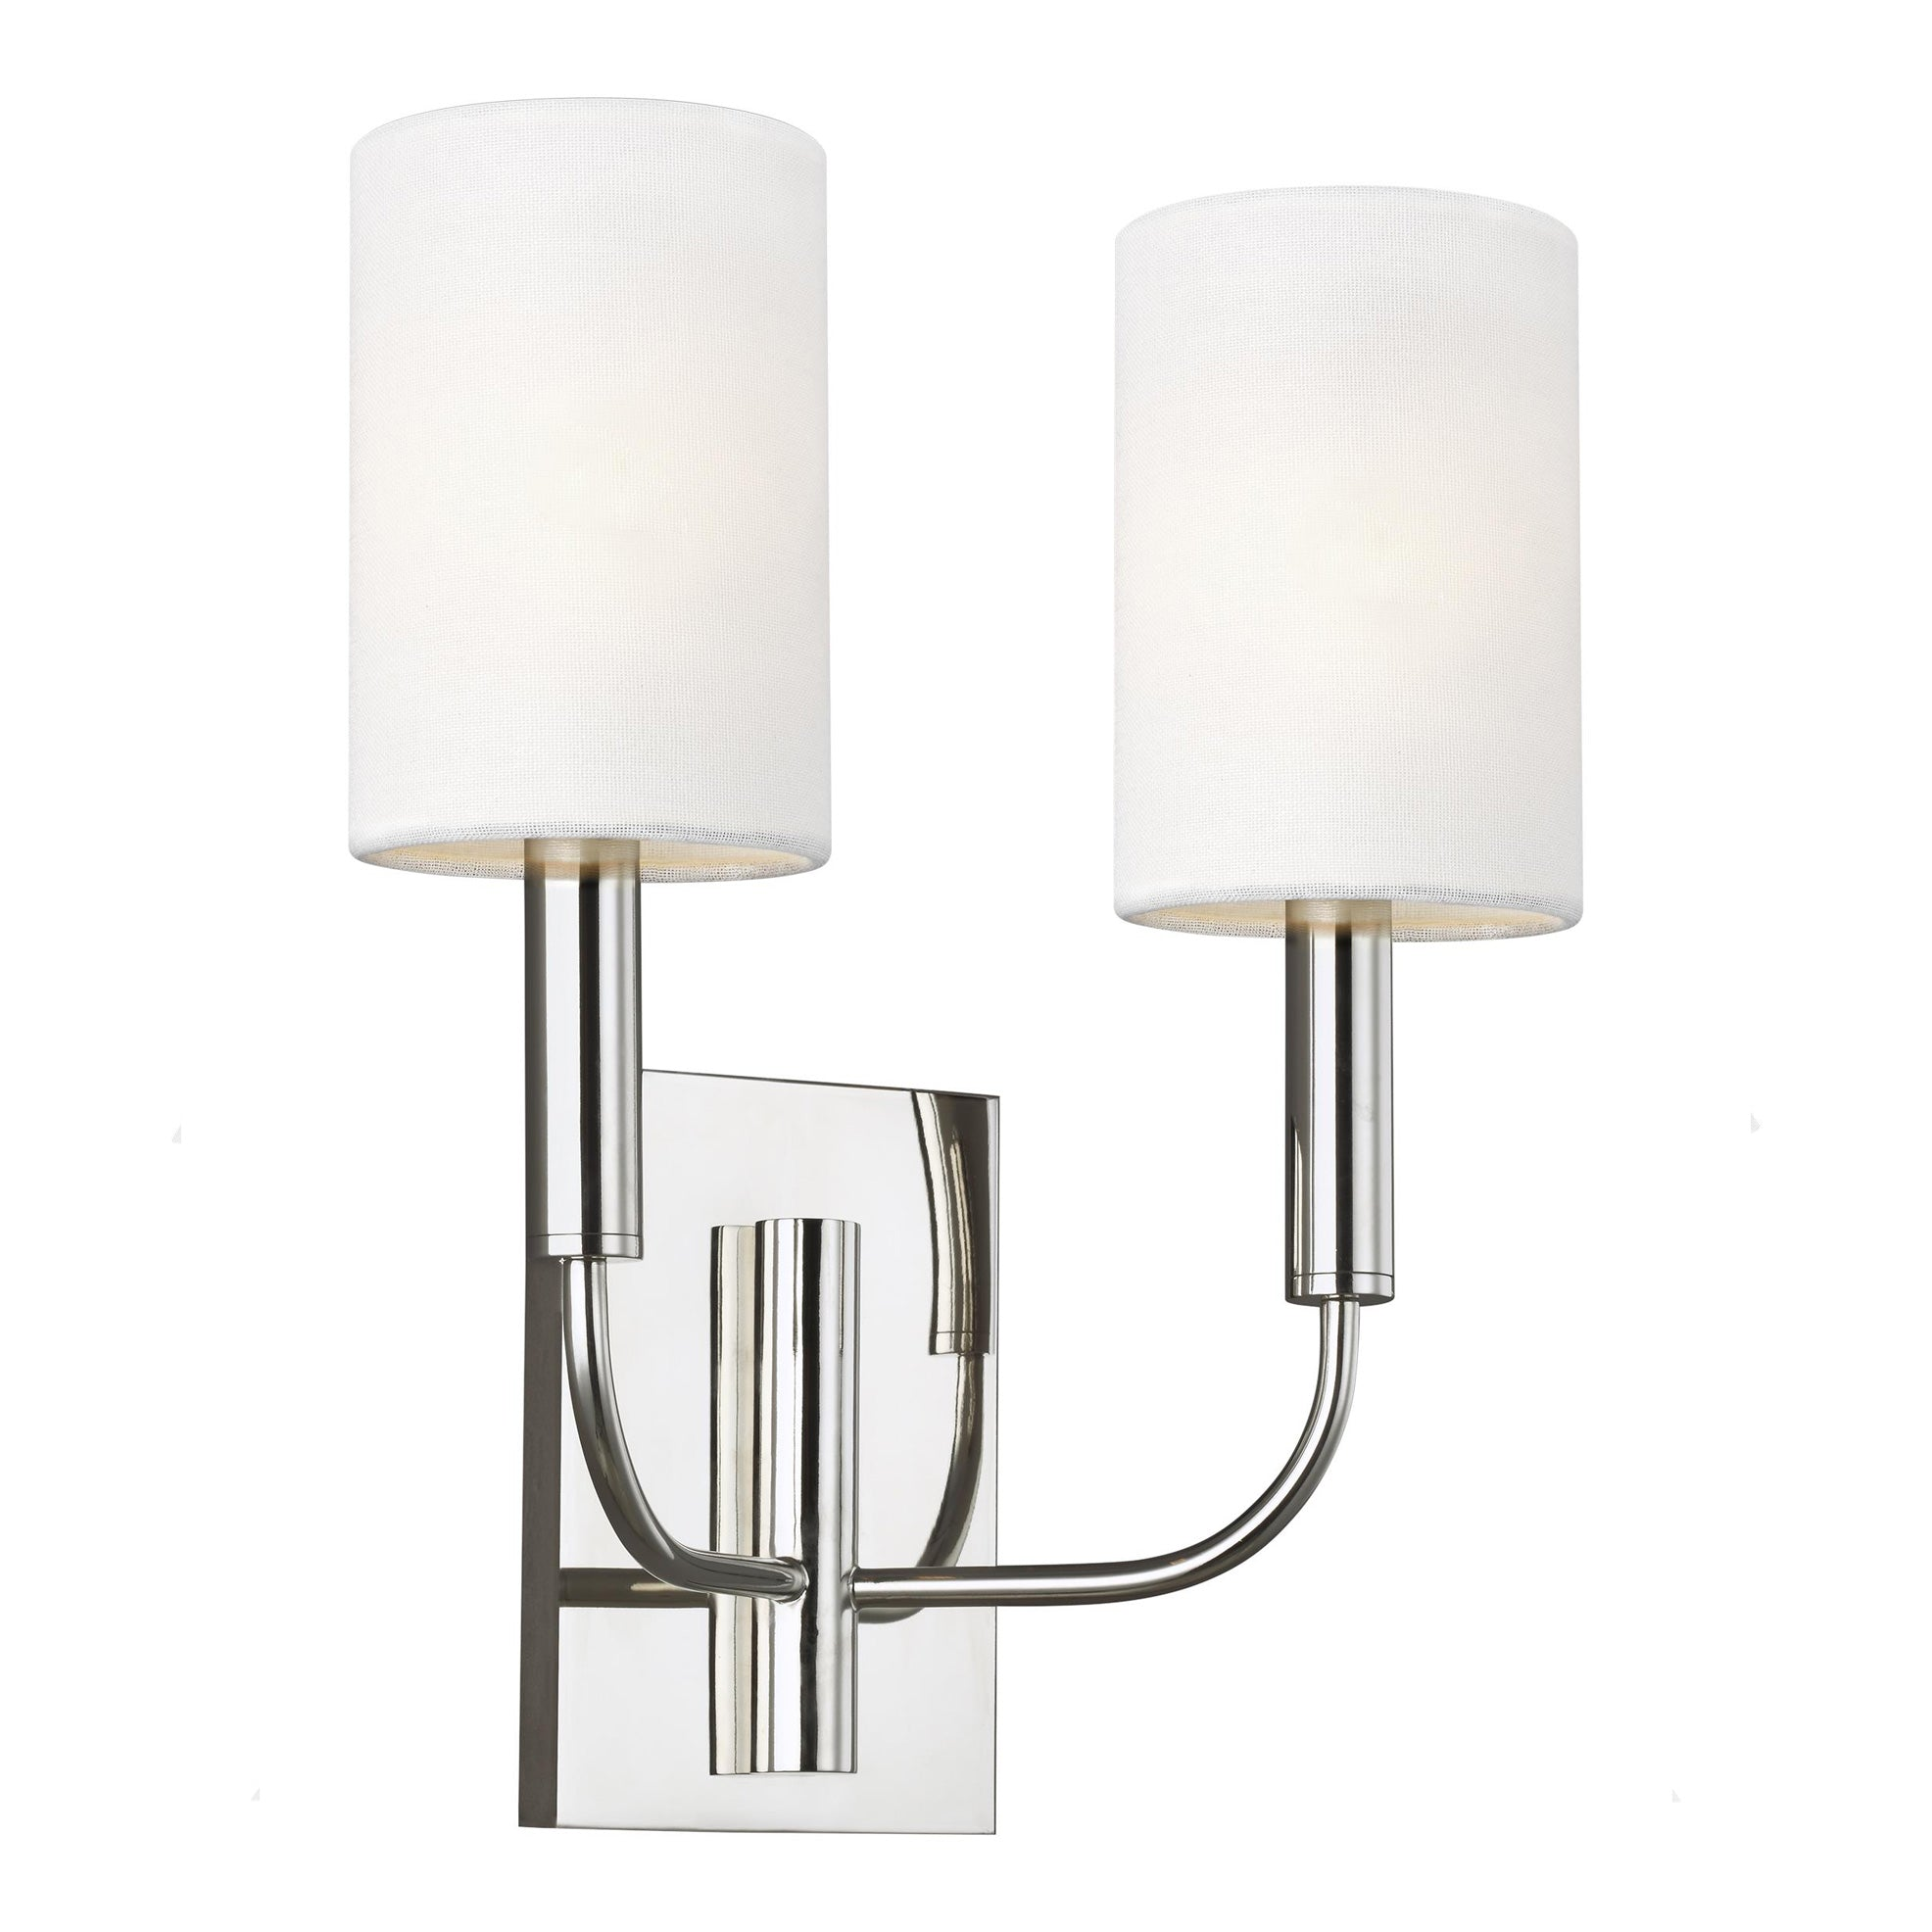 Grange 2-Light Wall Sconce